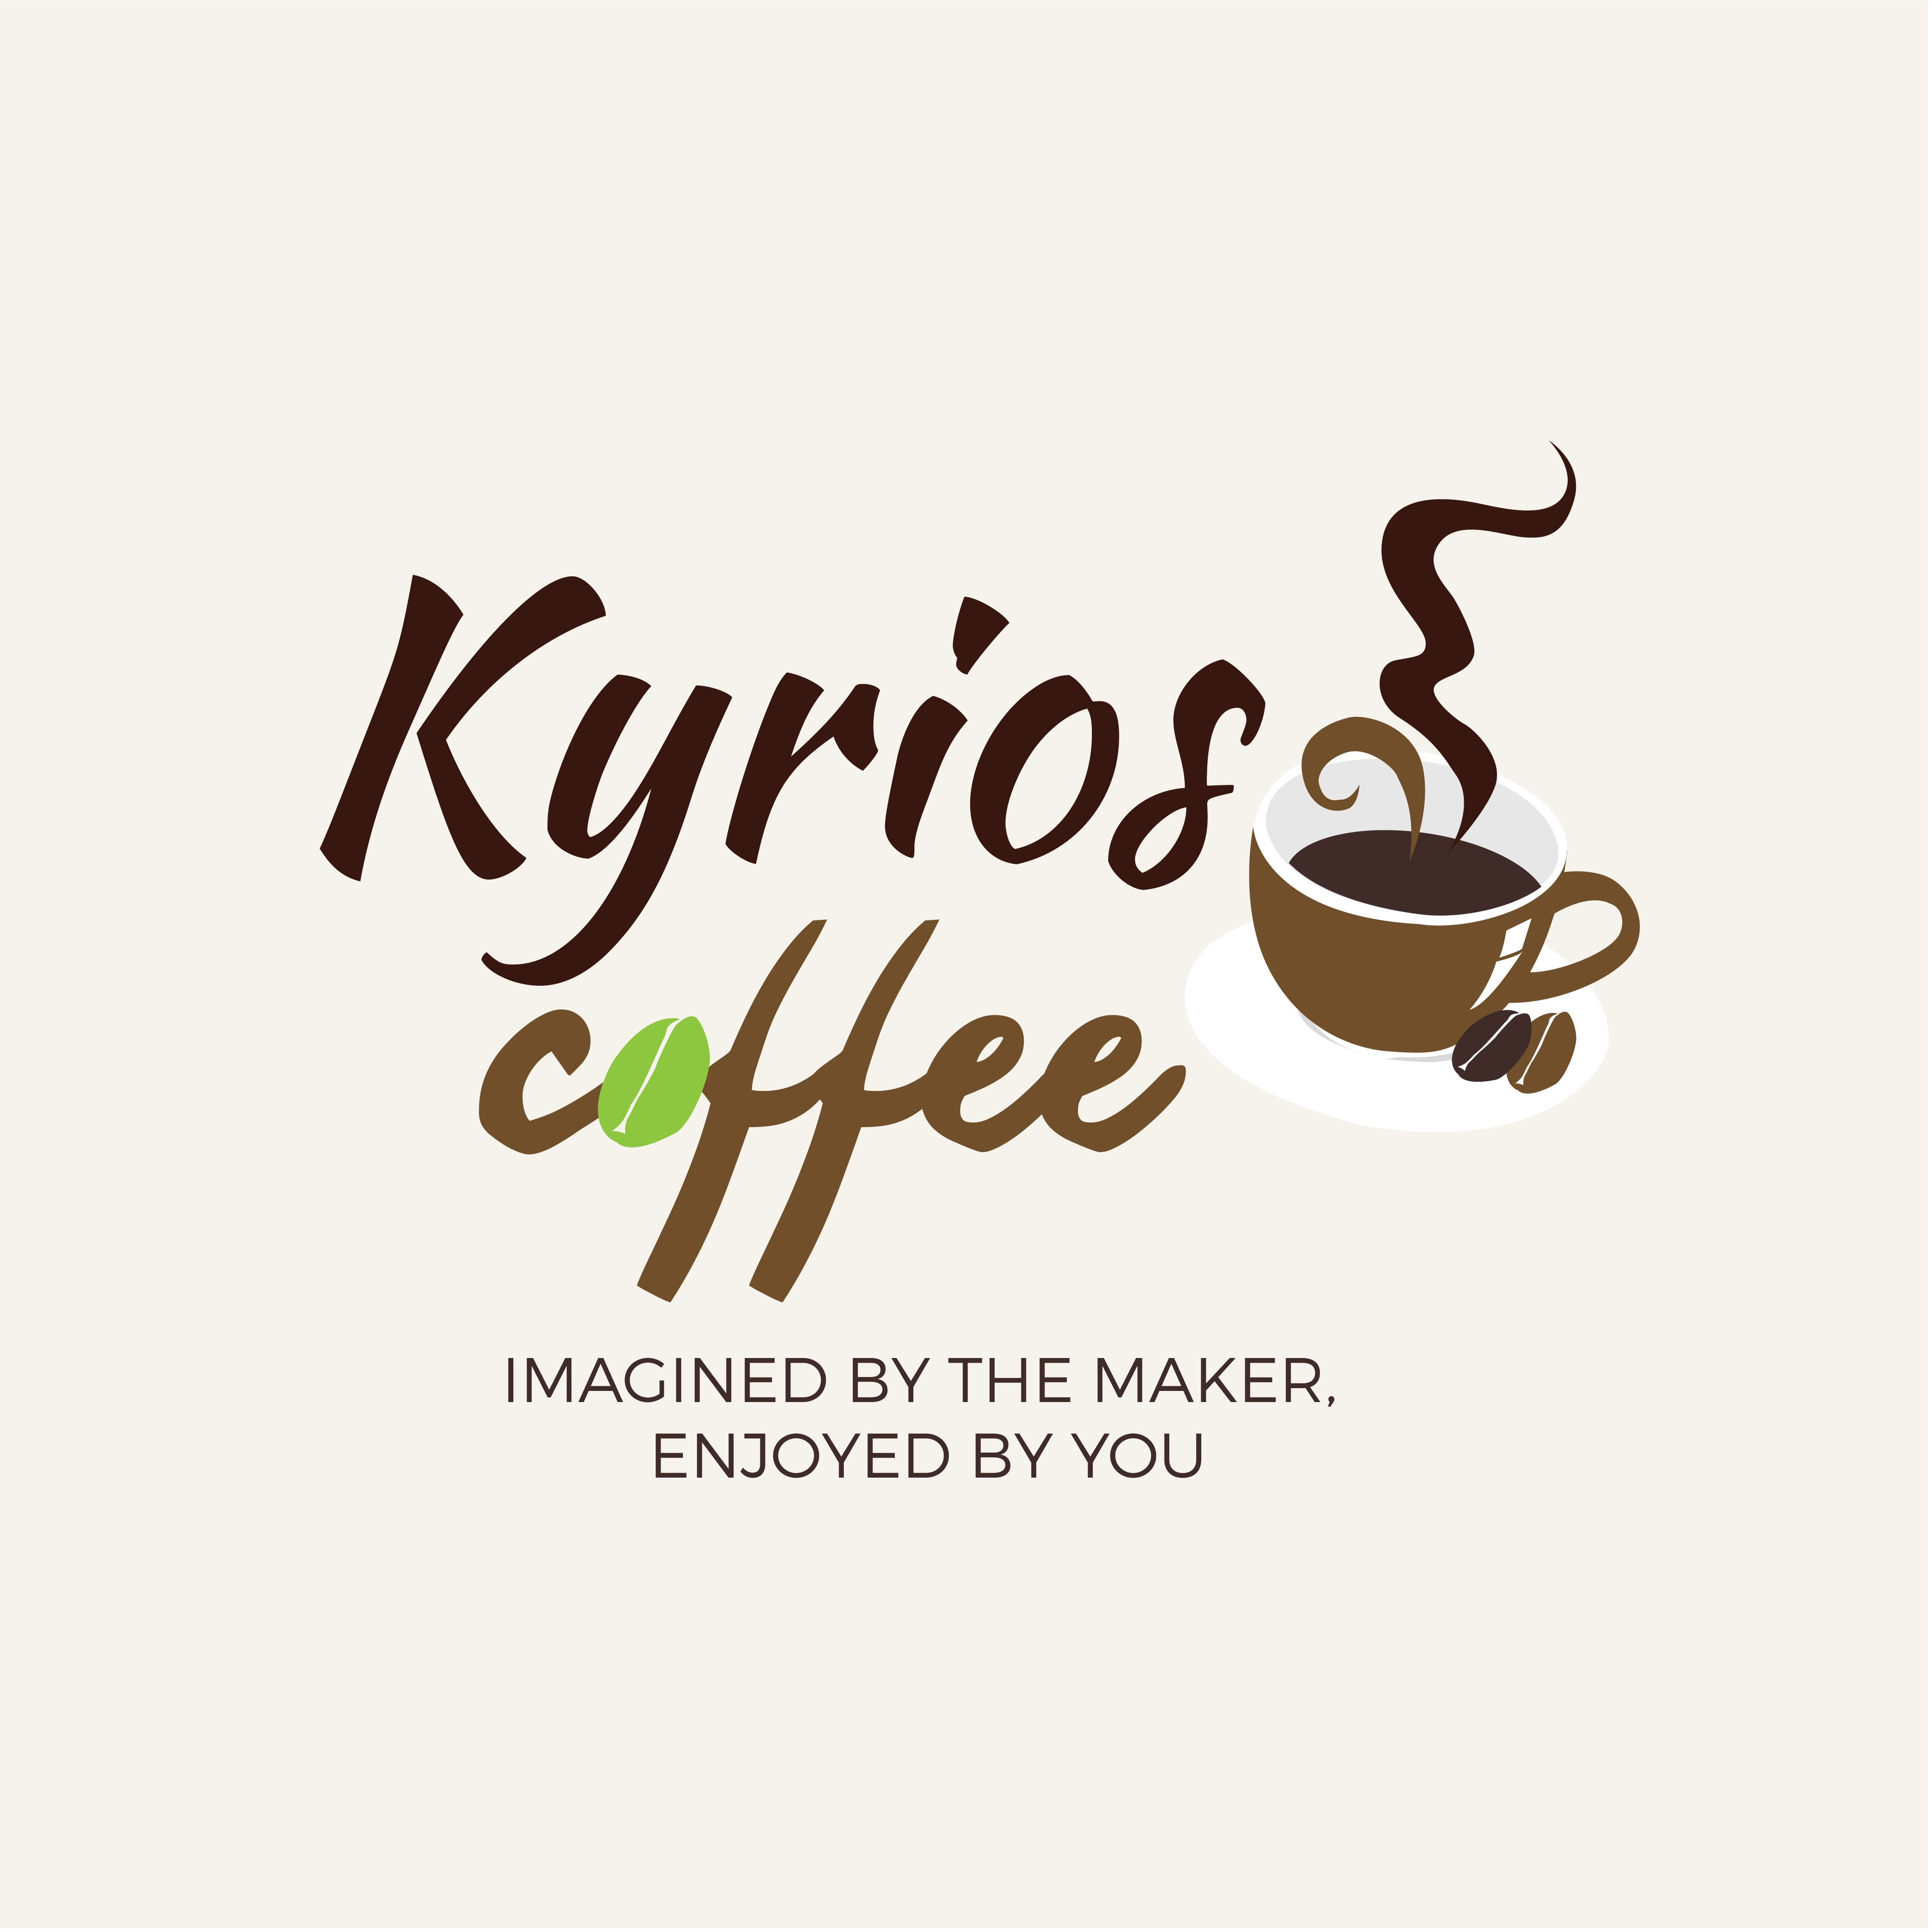 Kyrios Coffee - new business logo needed - potential for further design work